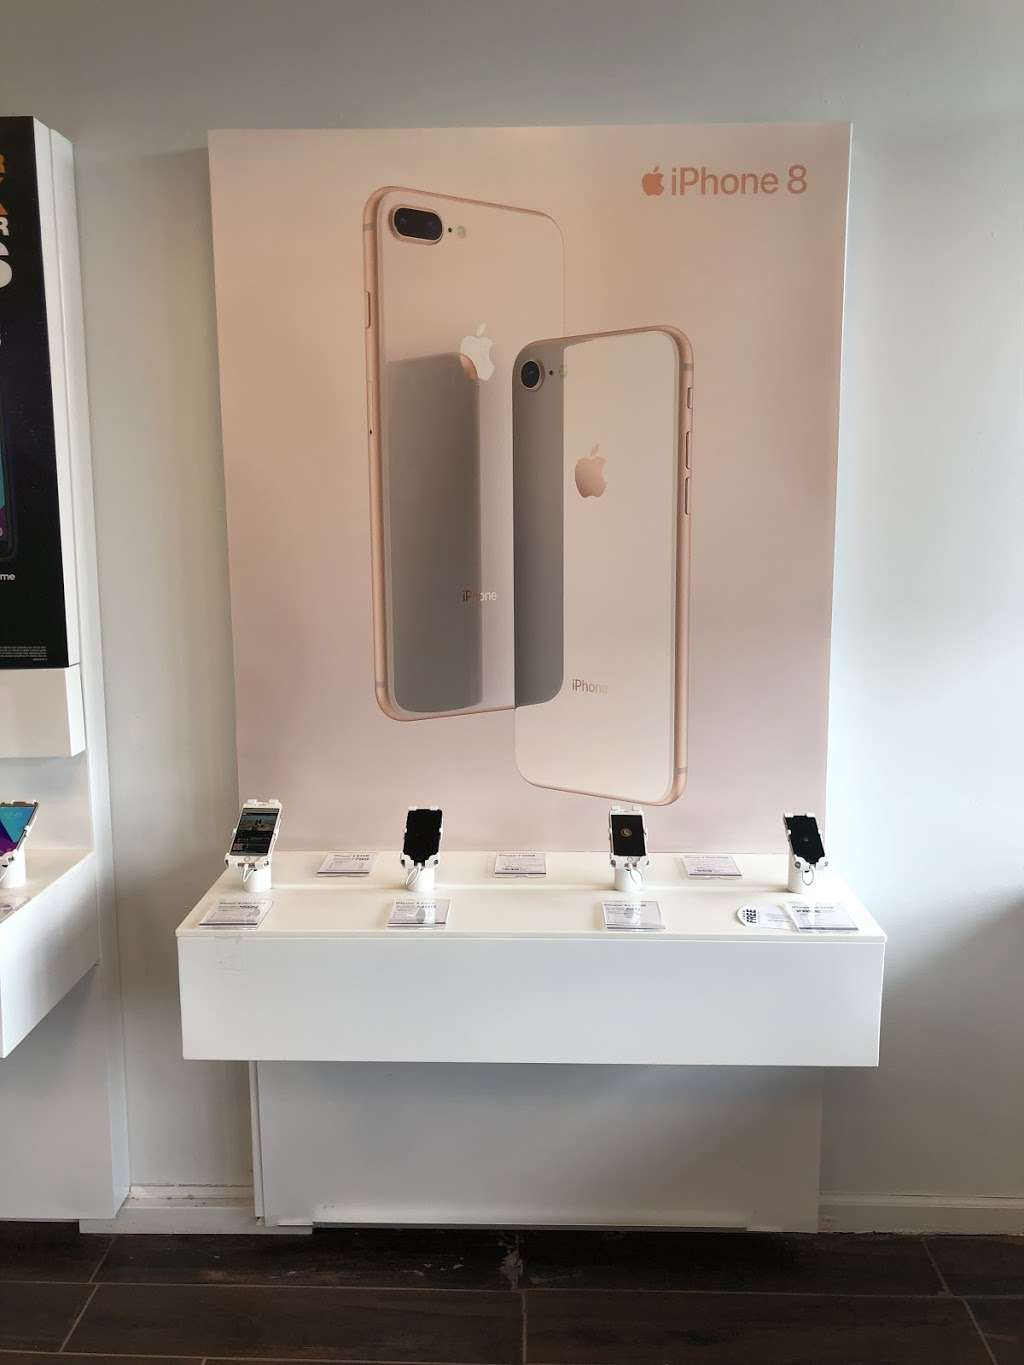 Metro by T-Mobile - electronics store  | Photo 9 of 10 | Address: 500 S River St, Hackensack, NJ 07601, USA | Phone: (201) 373-1000